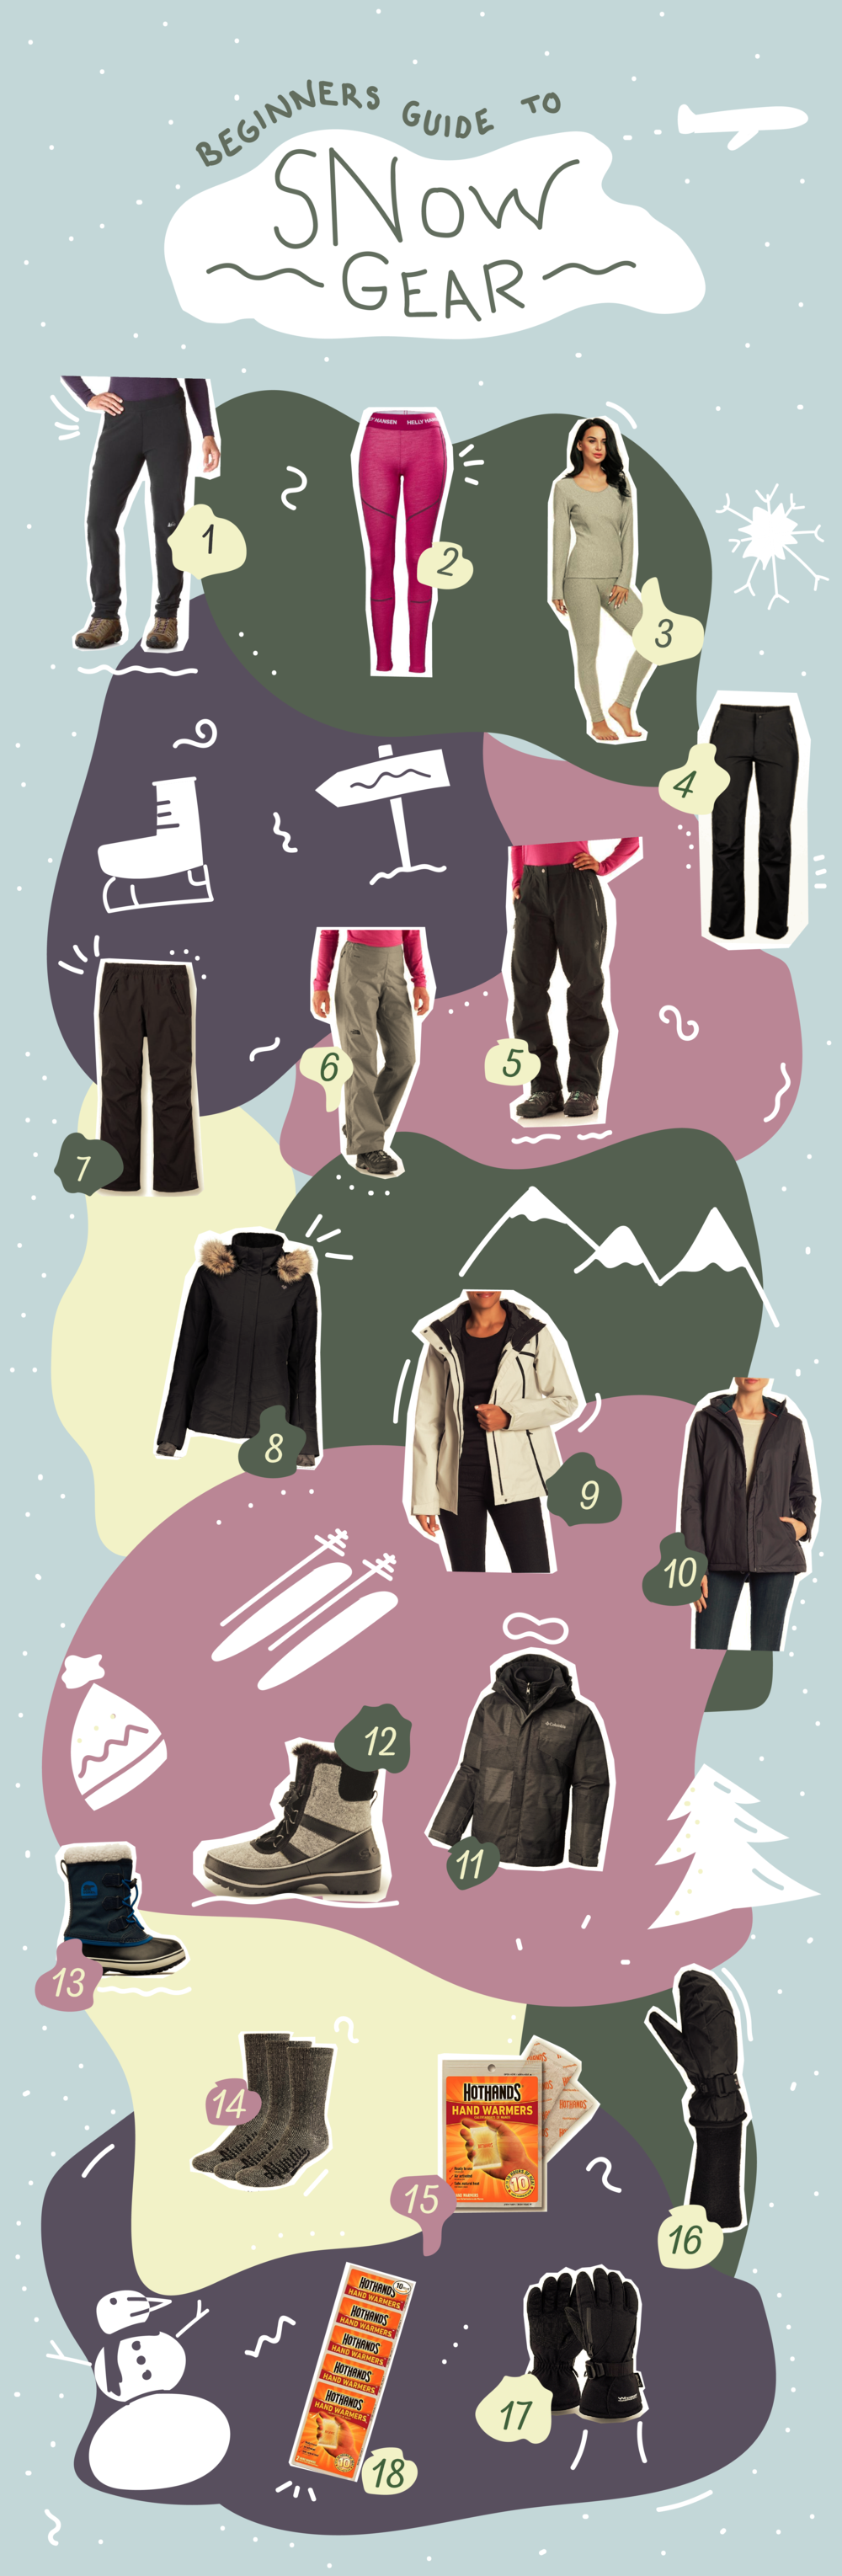 SNOW GEAR ESSENTIALS-03.png